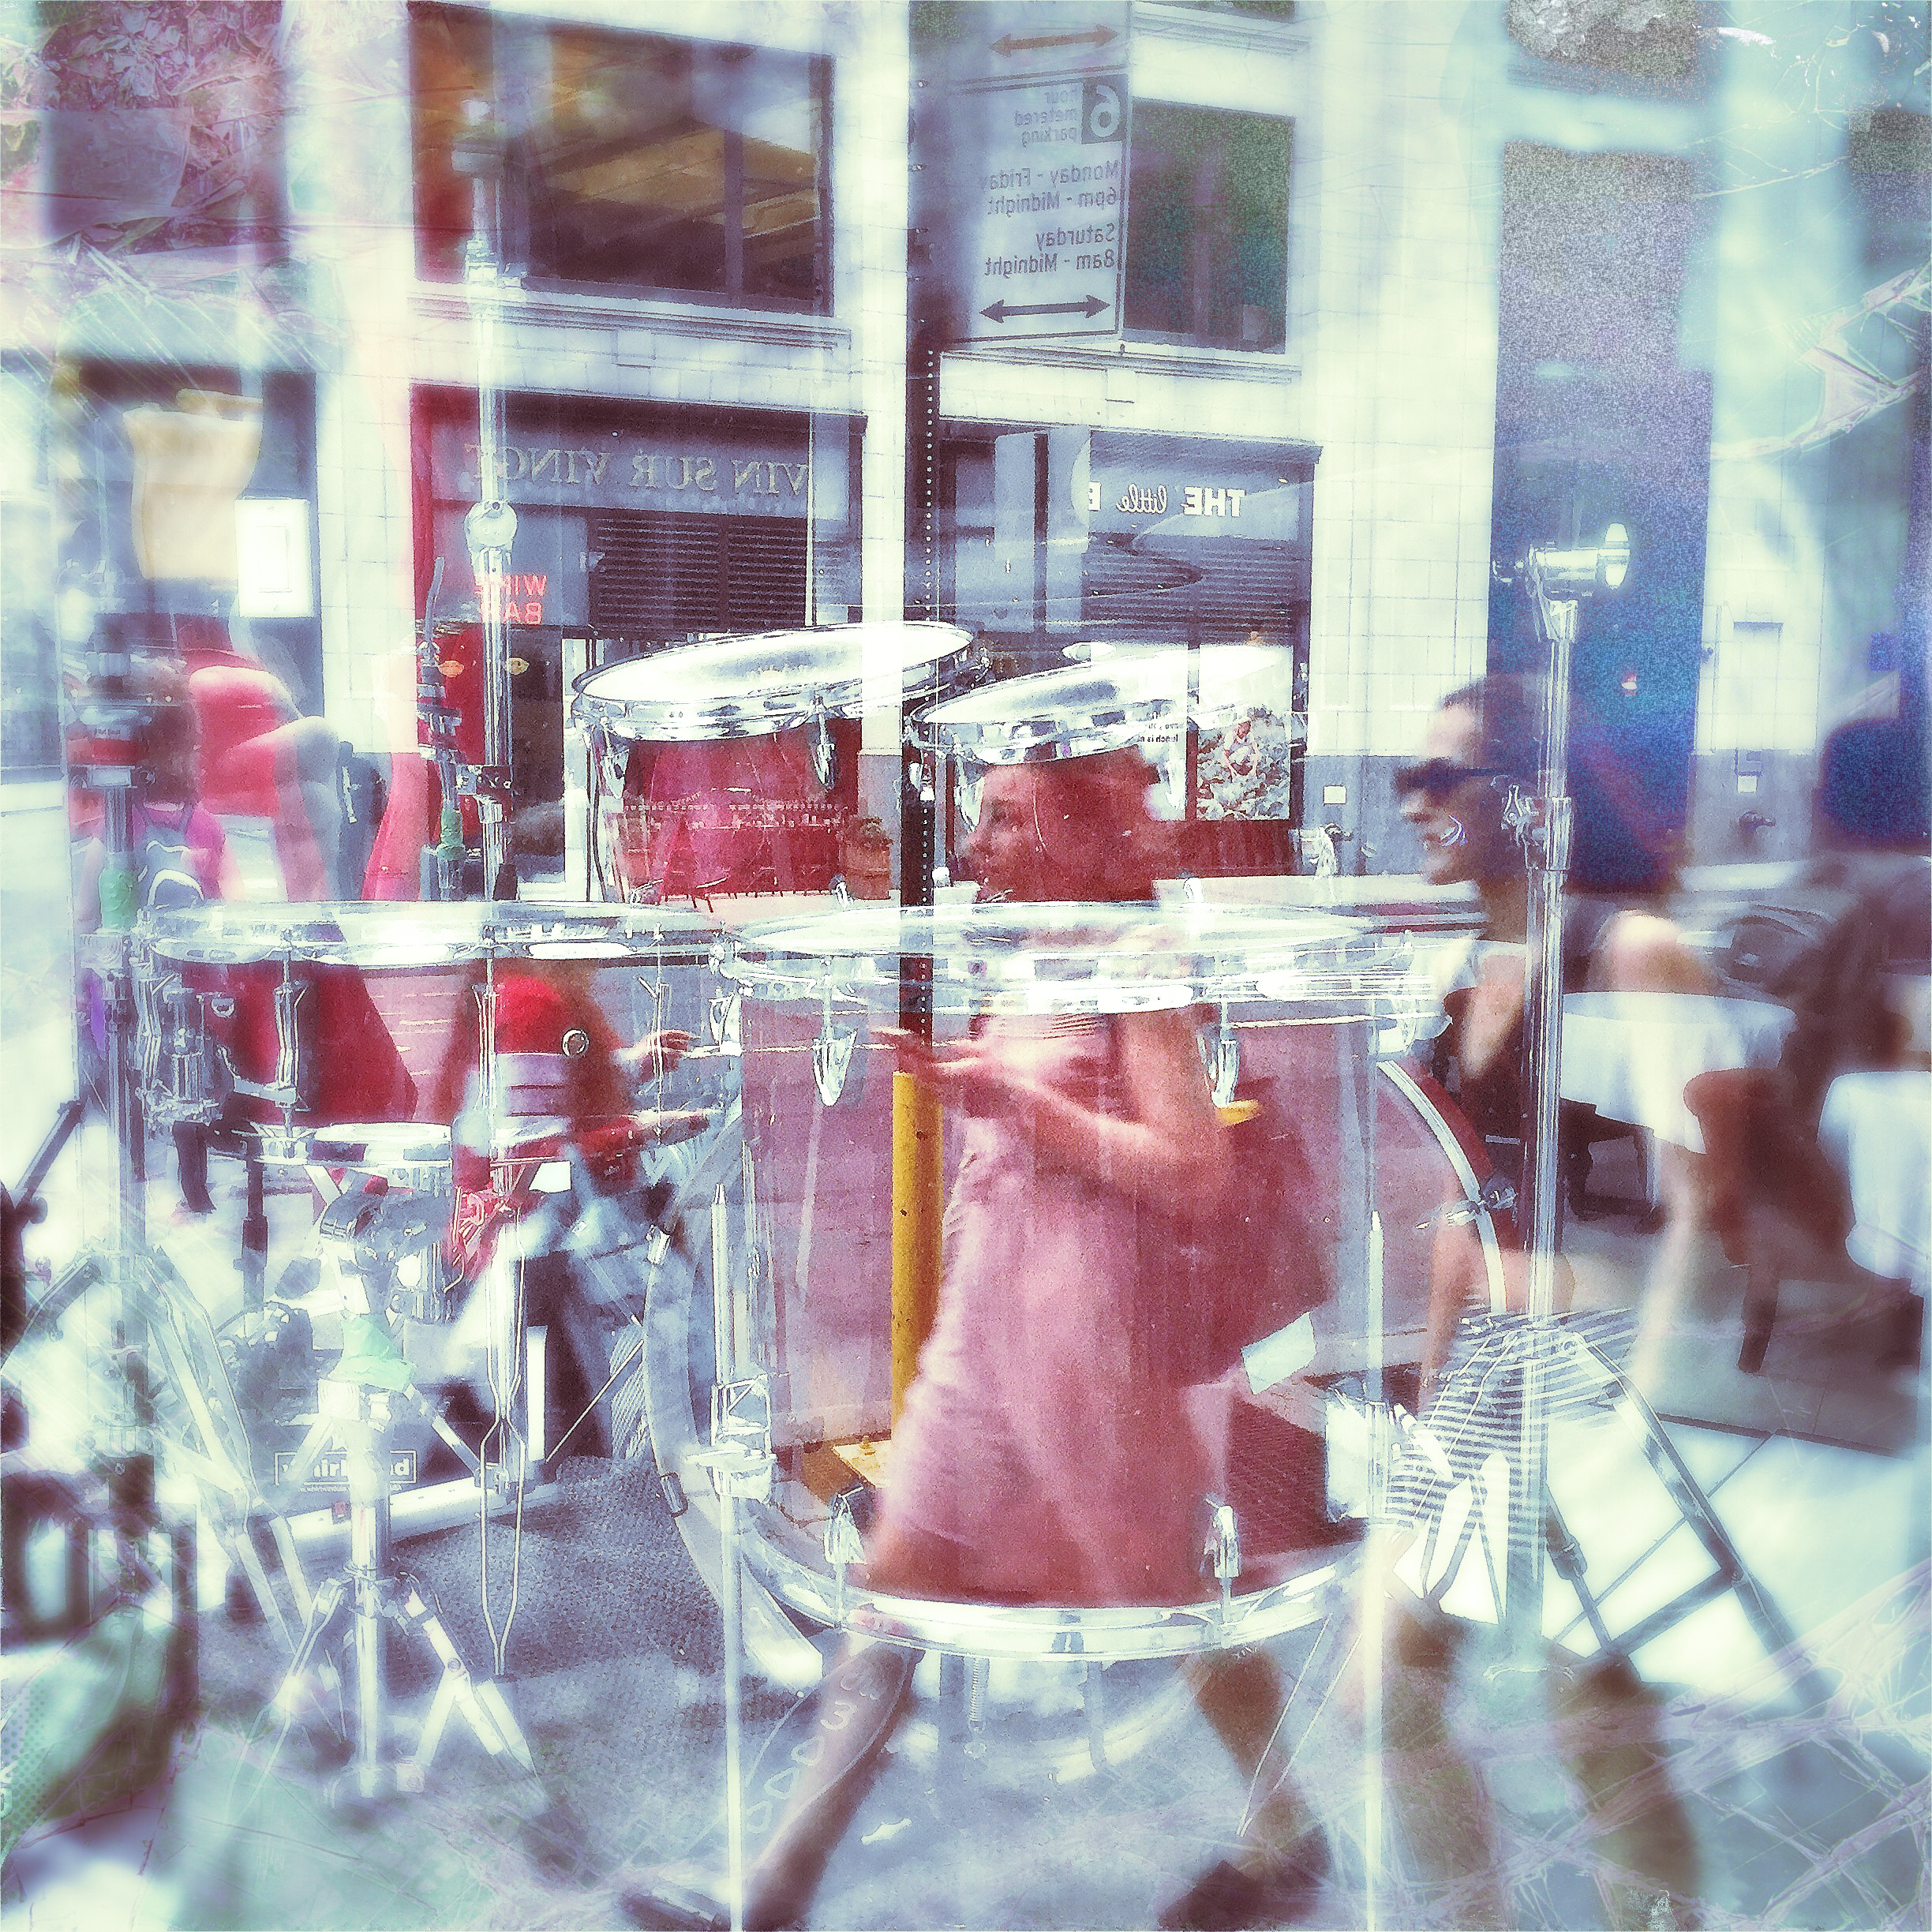 reflections on a drummer